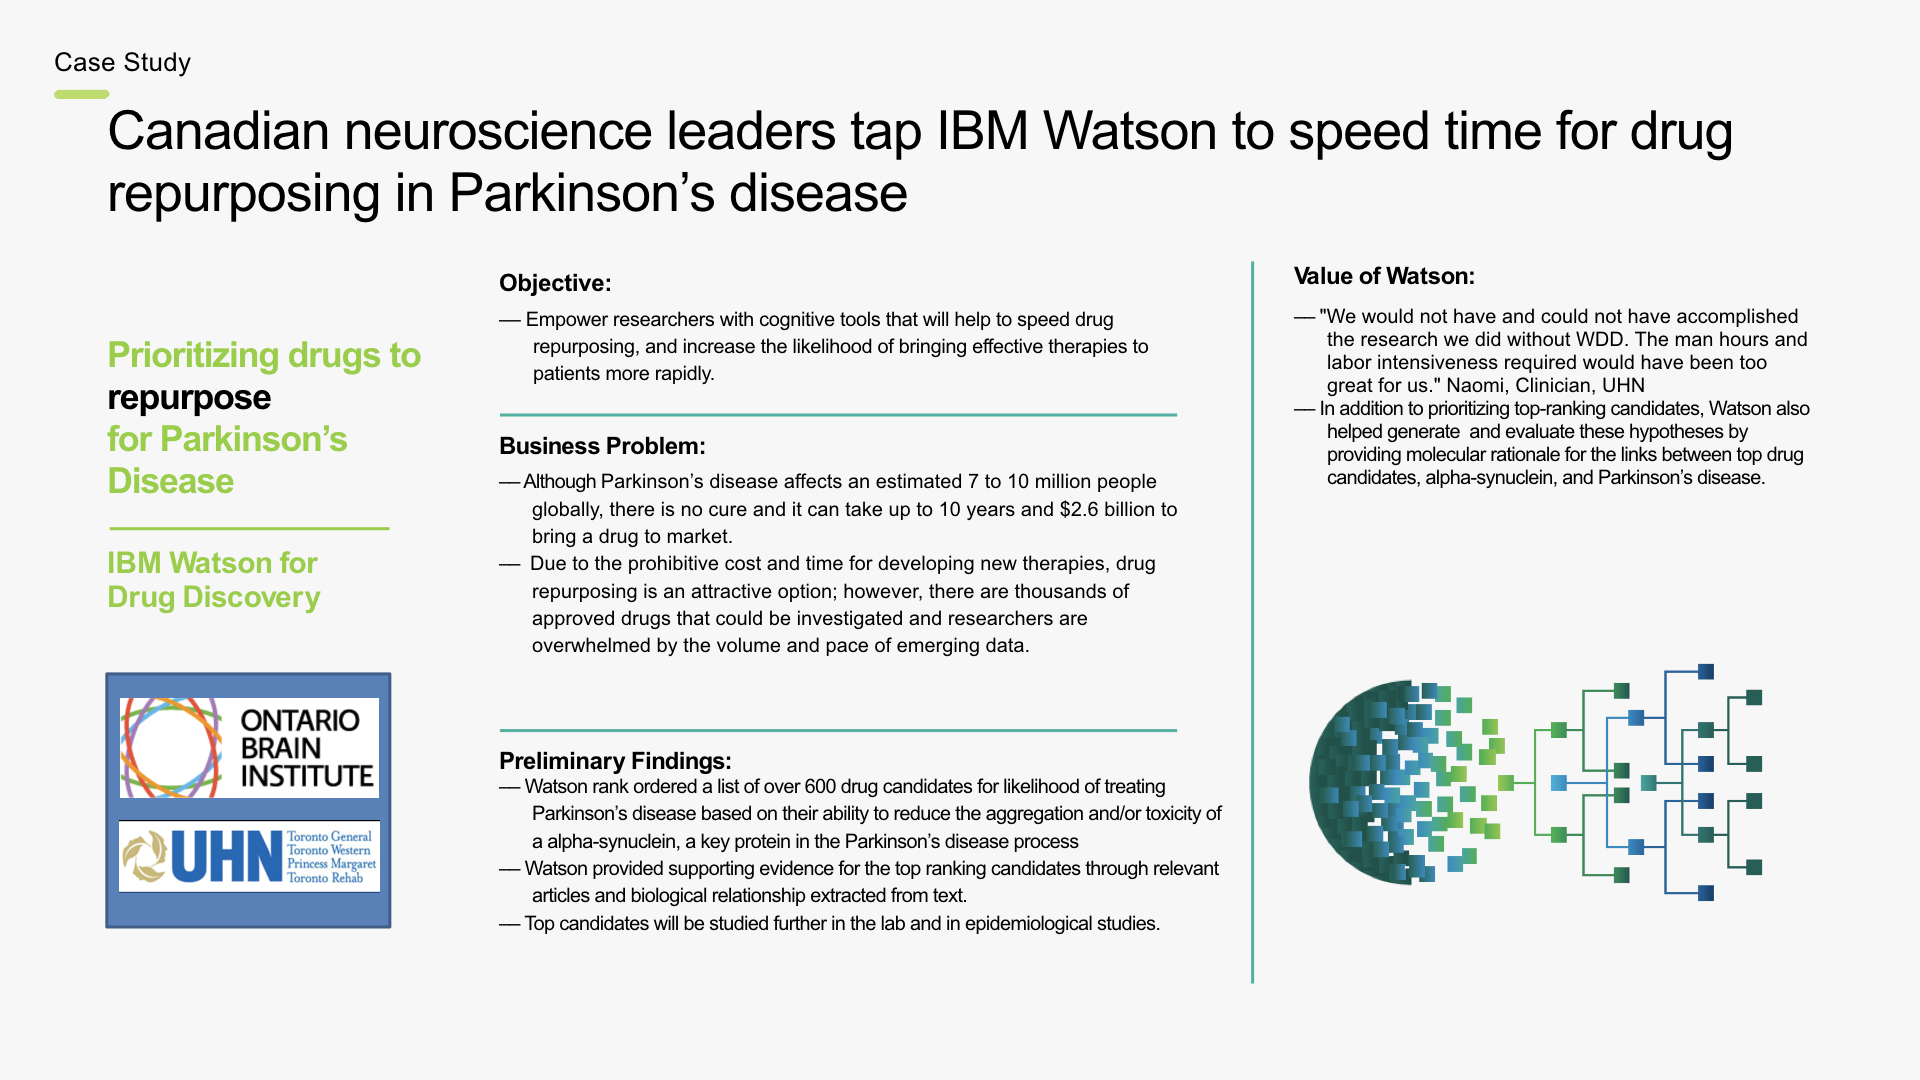 This Case Study came out insights from the 1-10-30 day interviews and served as an example of how the tool could be used to identify potential drugs for development with only of the fraction of the time, effort, and investment. 2 research papers were later presented on using Watson for Drug Discovery at medical conferences.